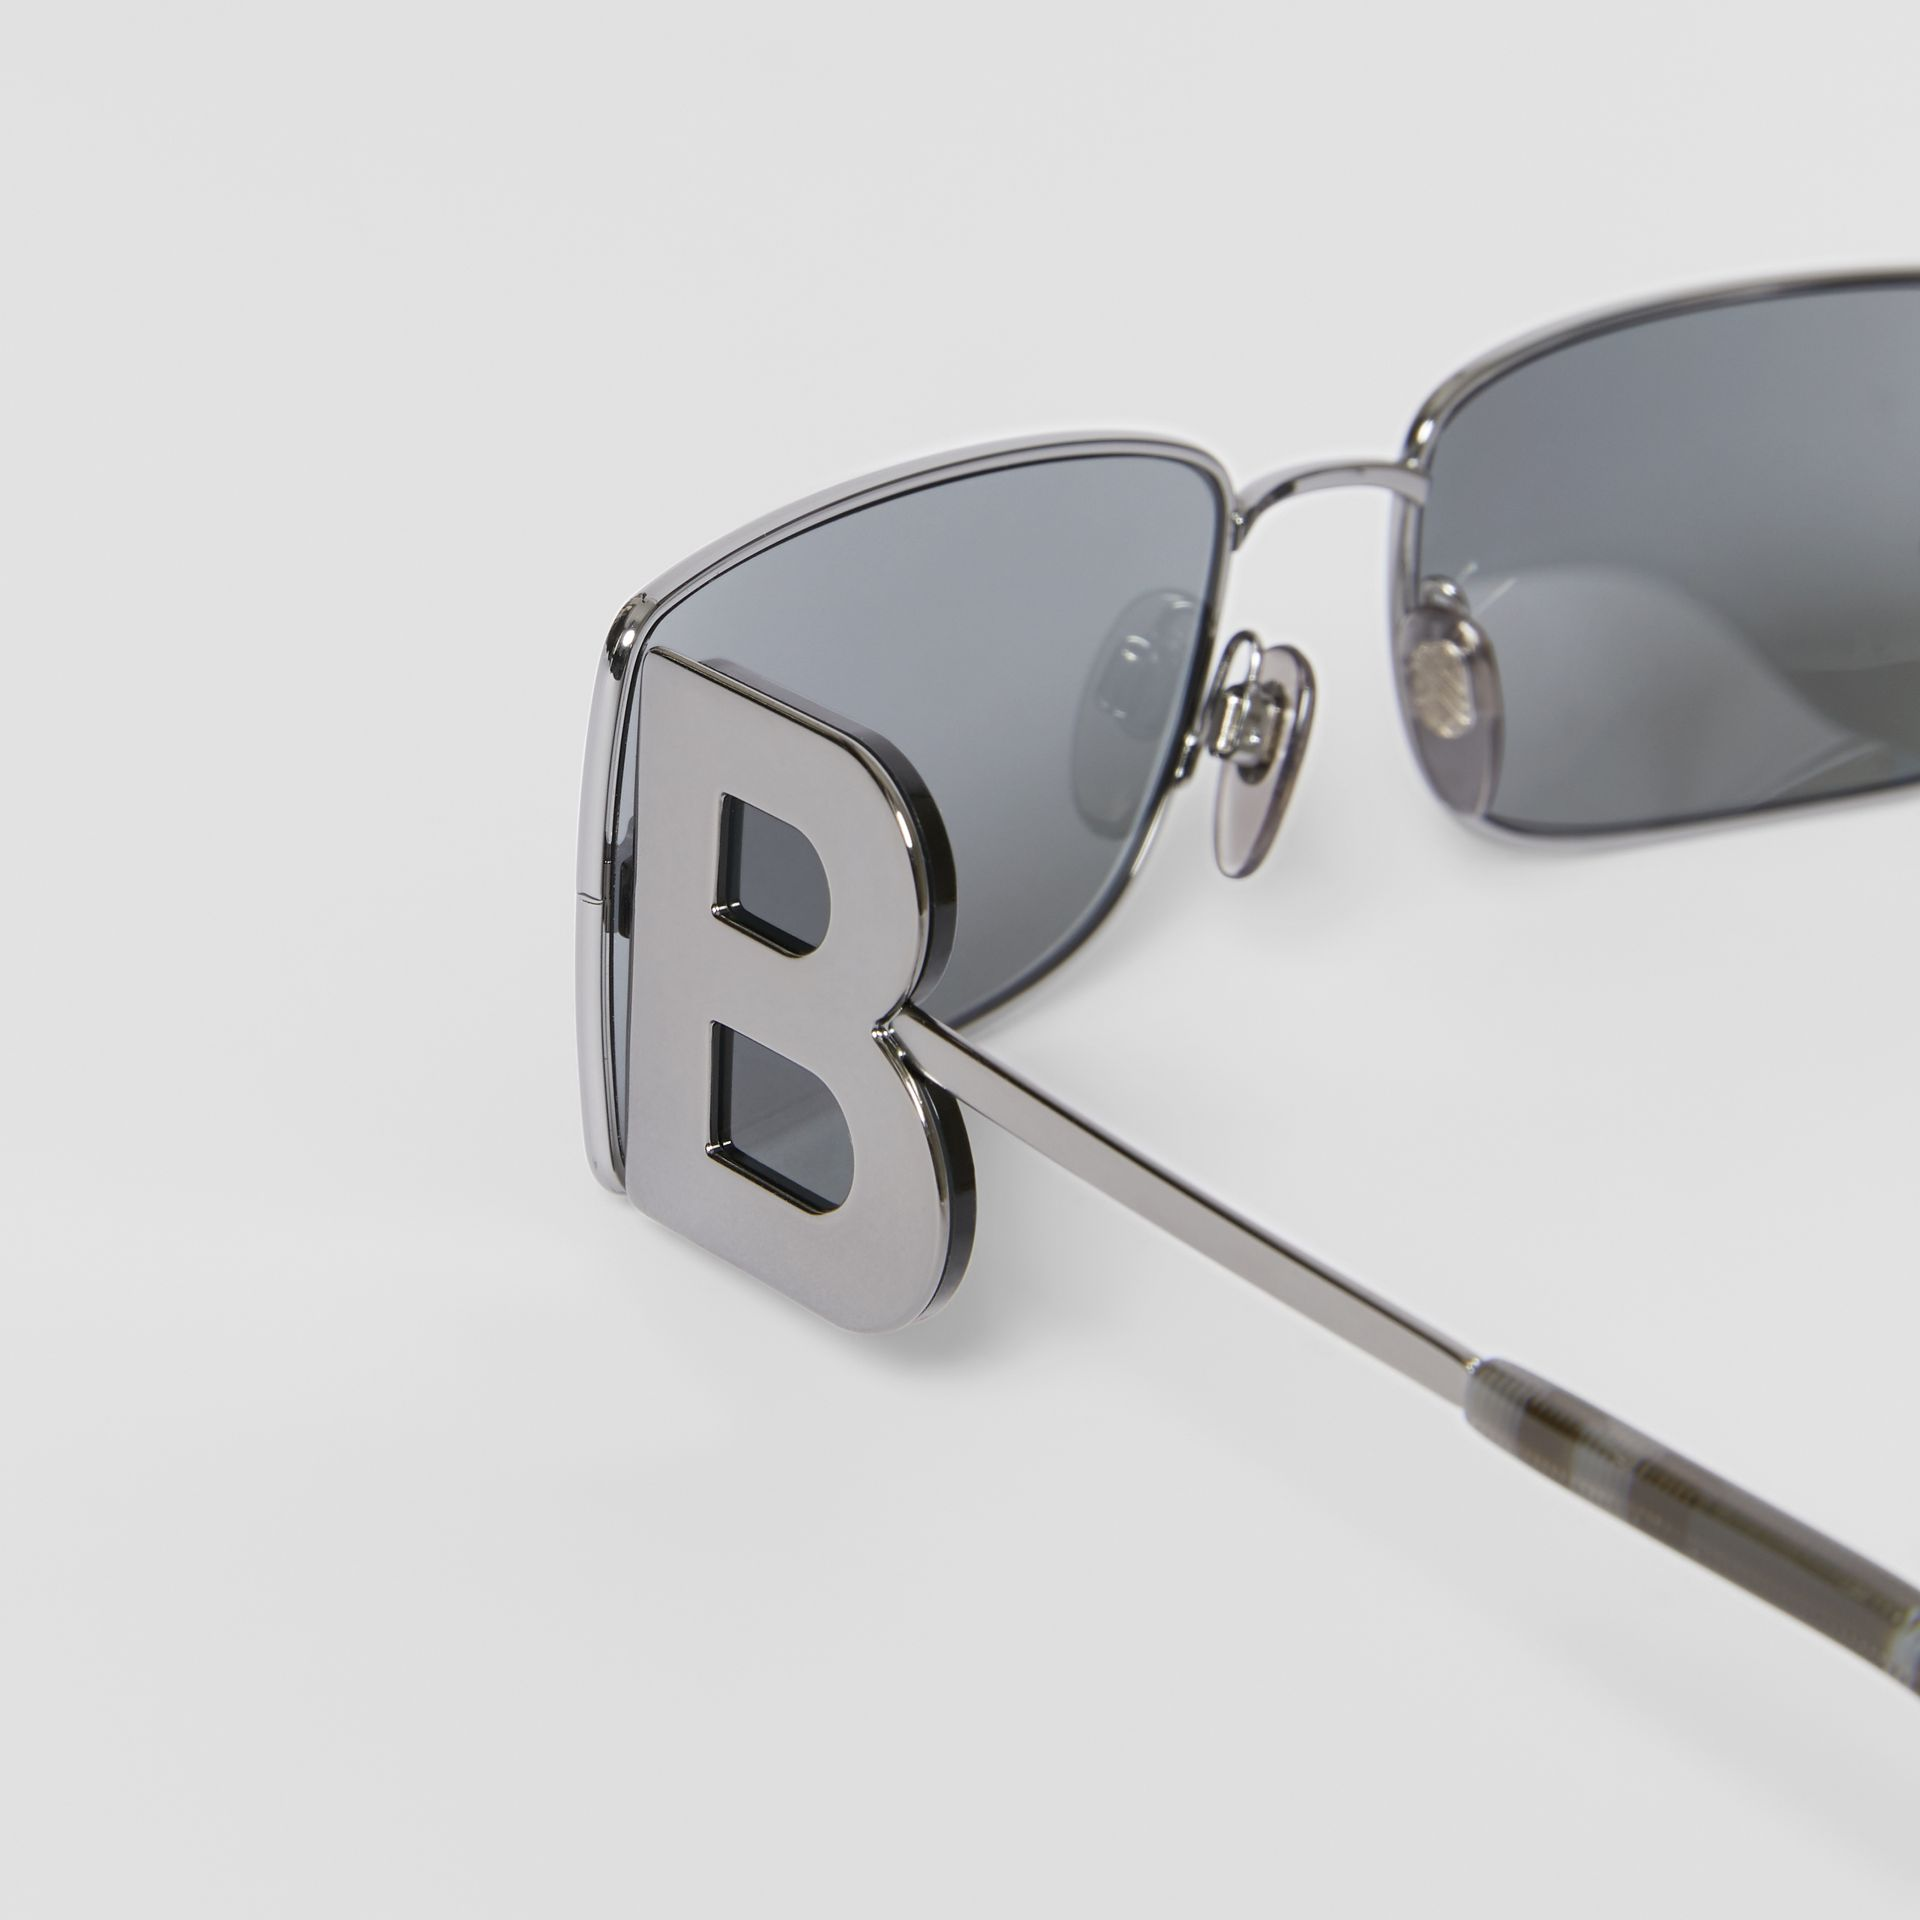 'B' Lens Detail Rectangular Frame Sunglasses in Gun Metal Grey - Women | Burberry United Kingdom - gallery image 1